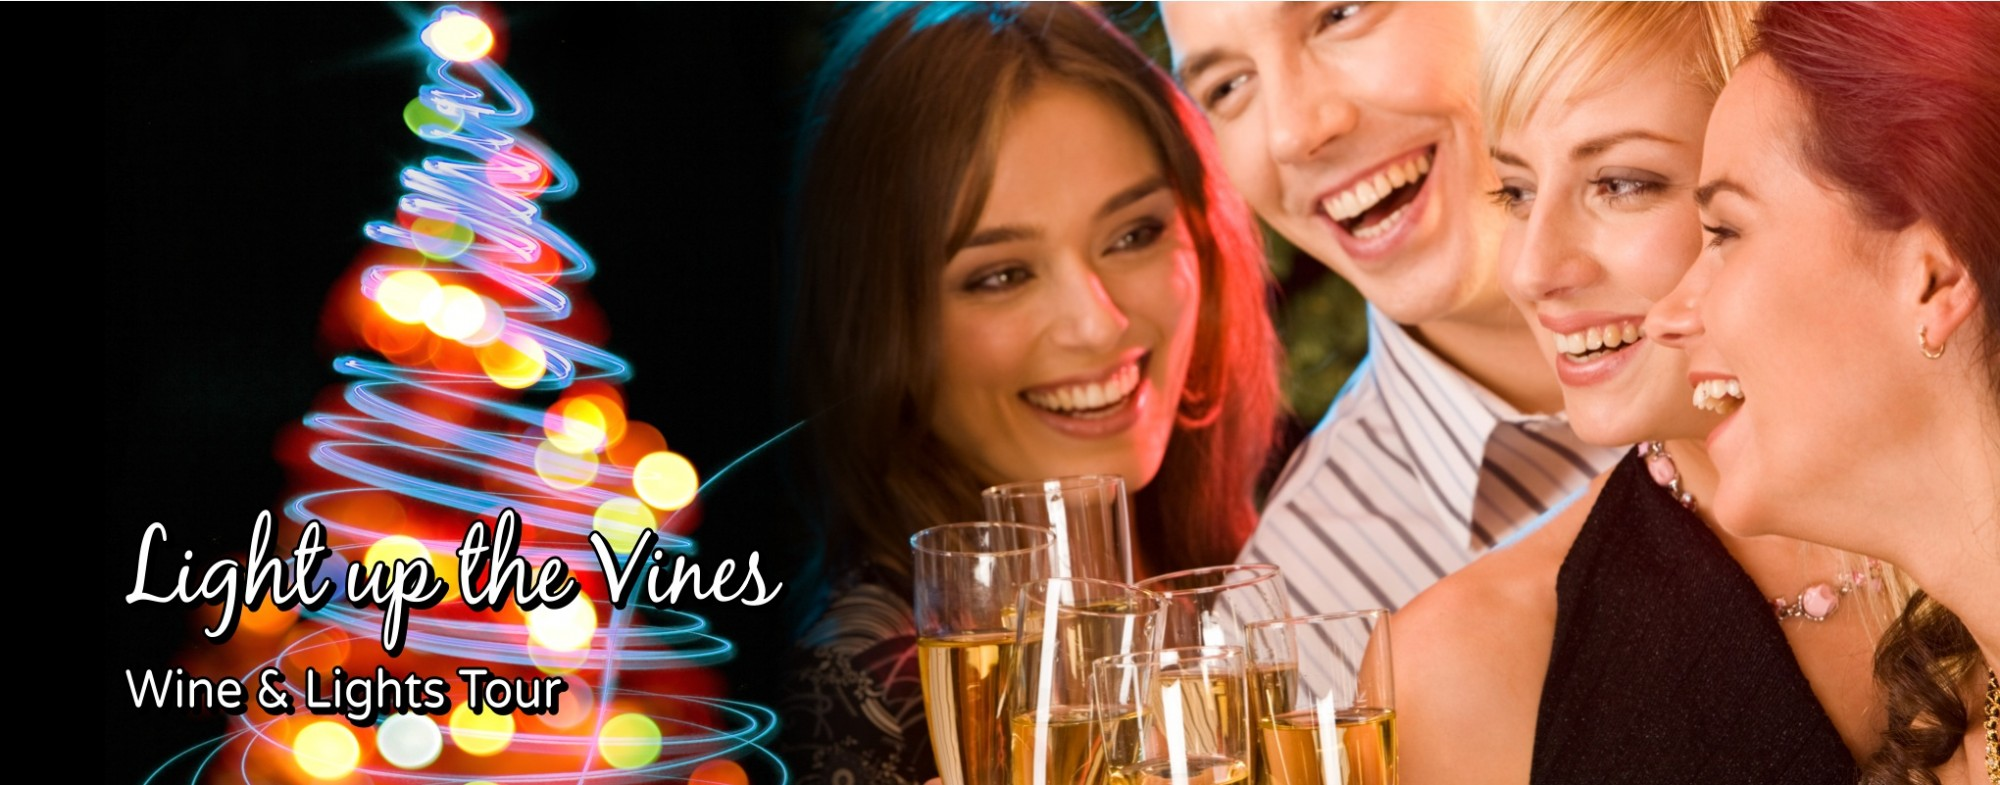 distinctly kelowna wine tours summerland light up the vines